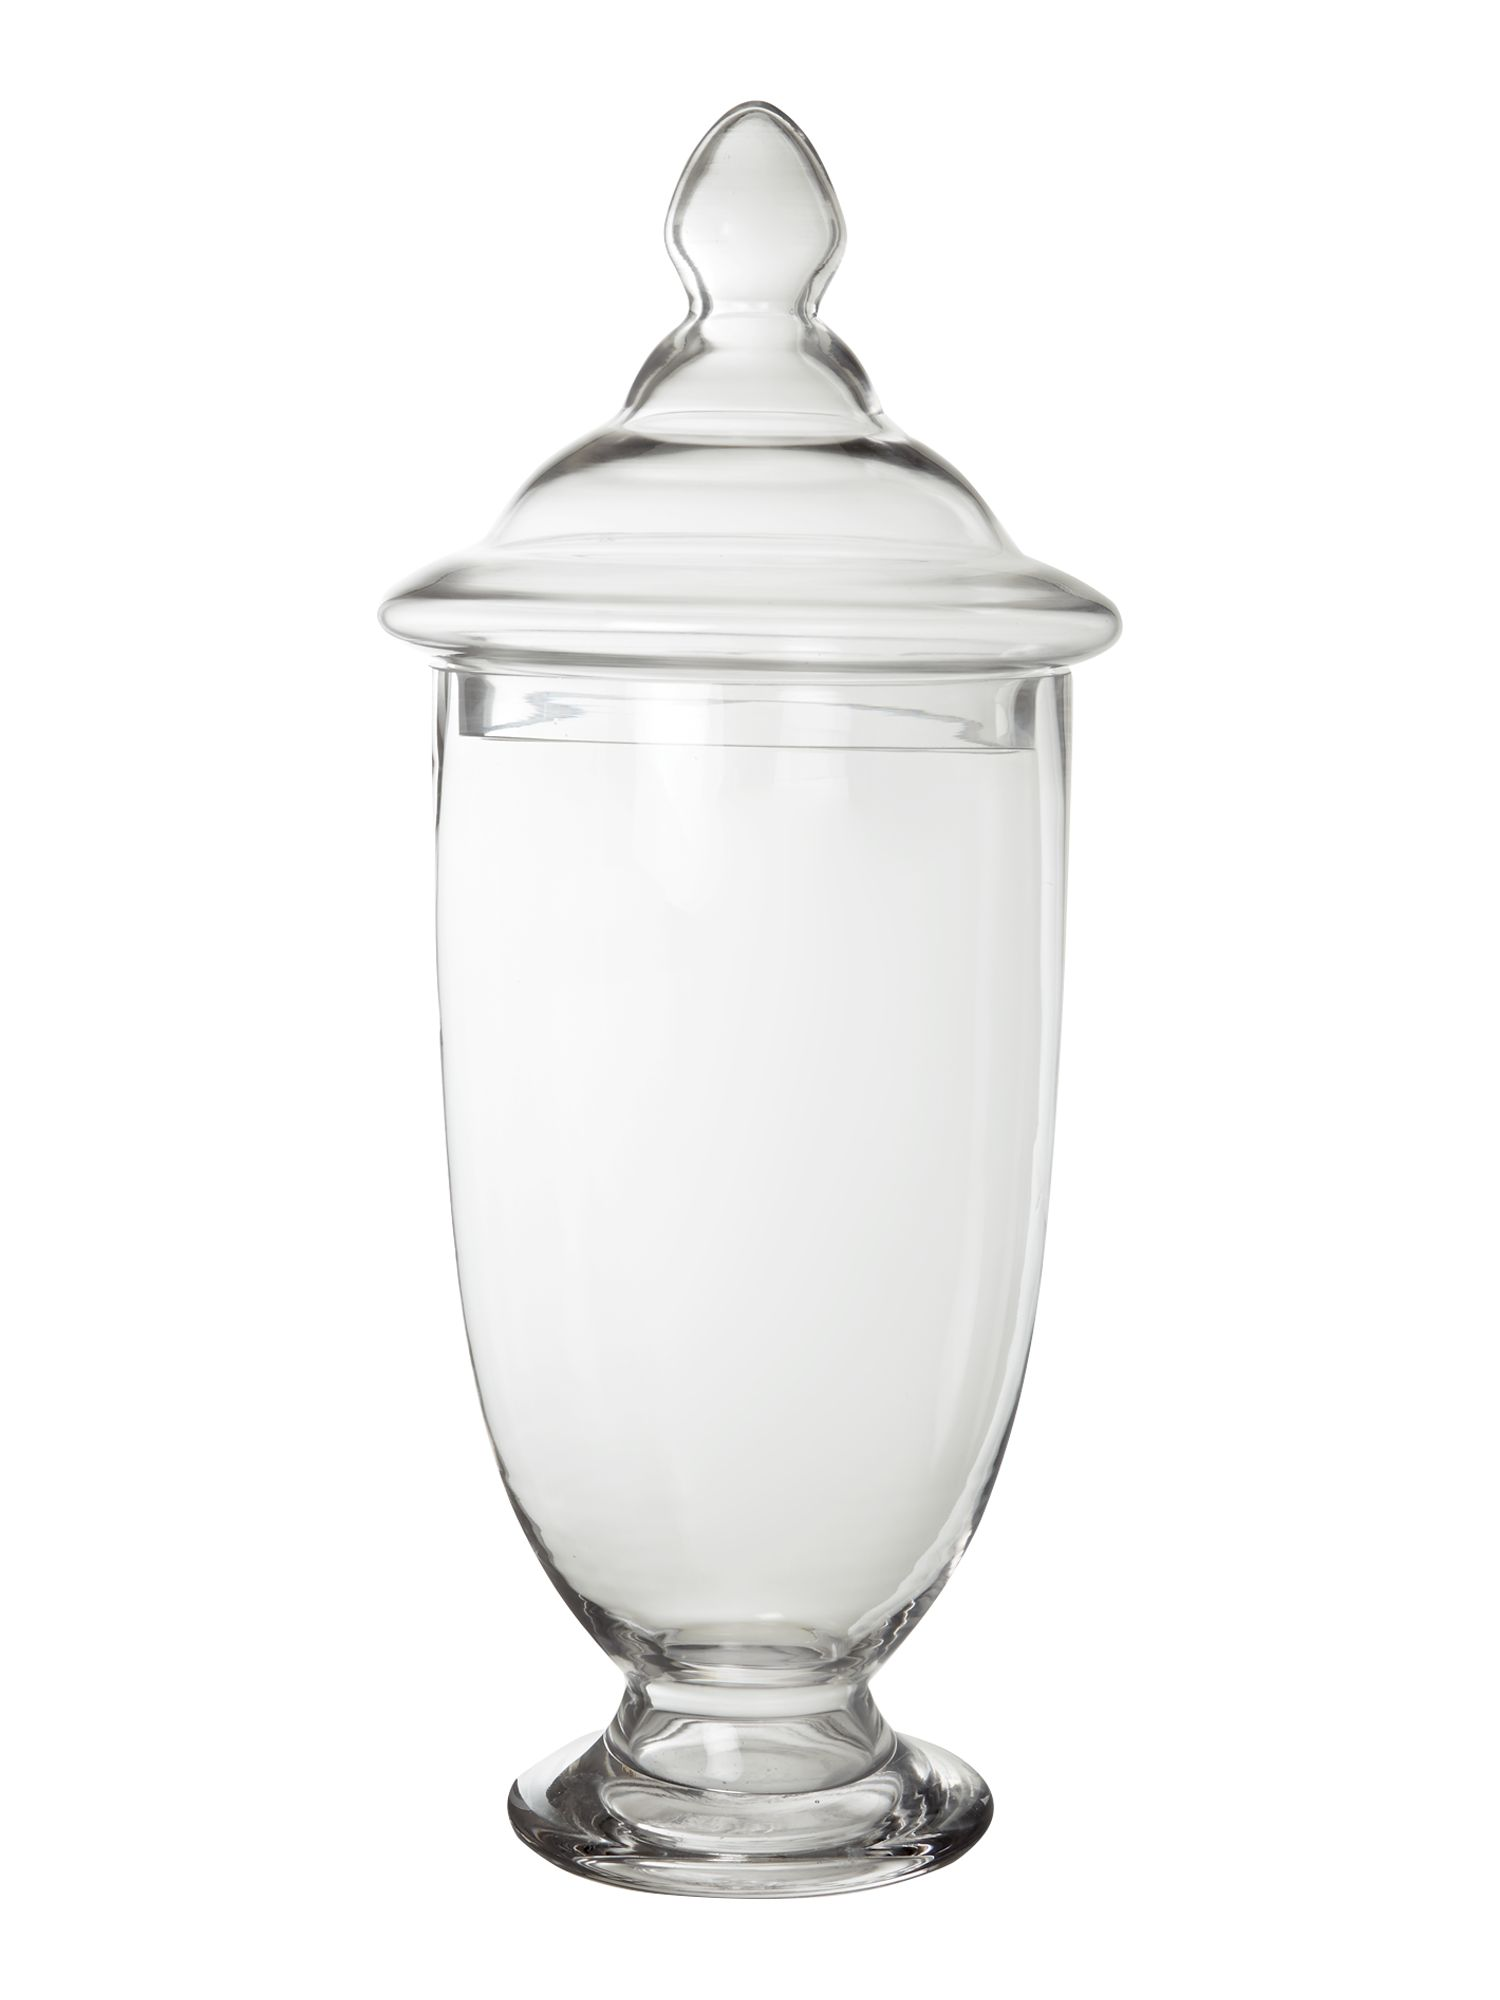 Pirard glass jar with lid